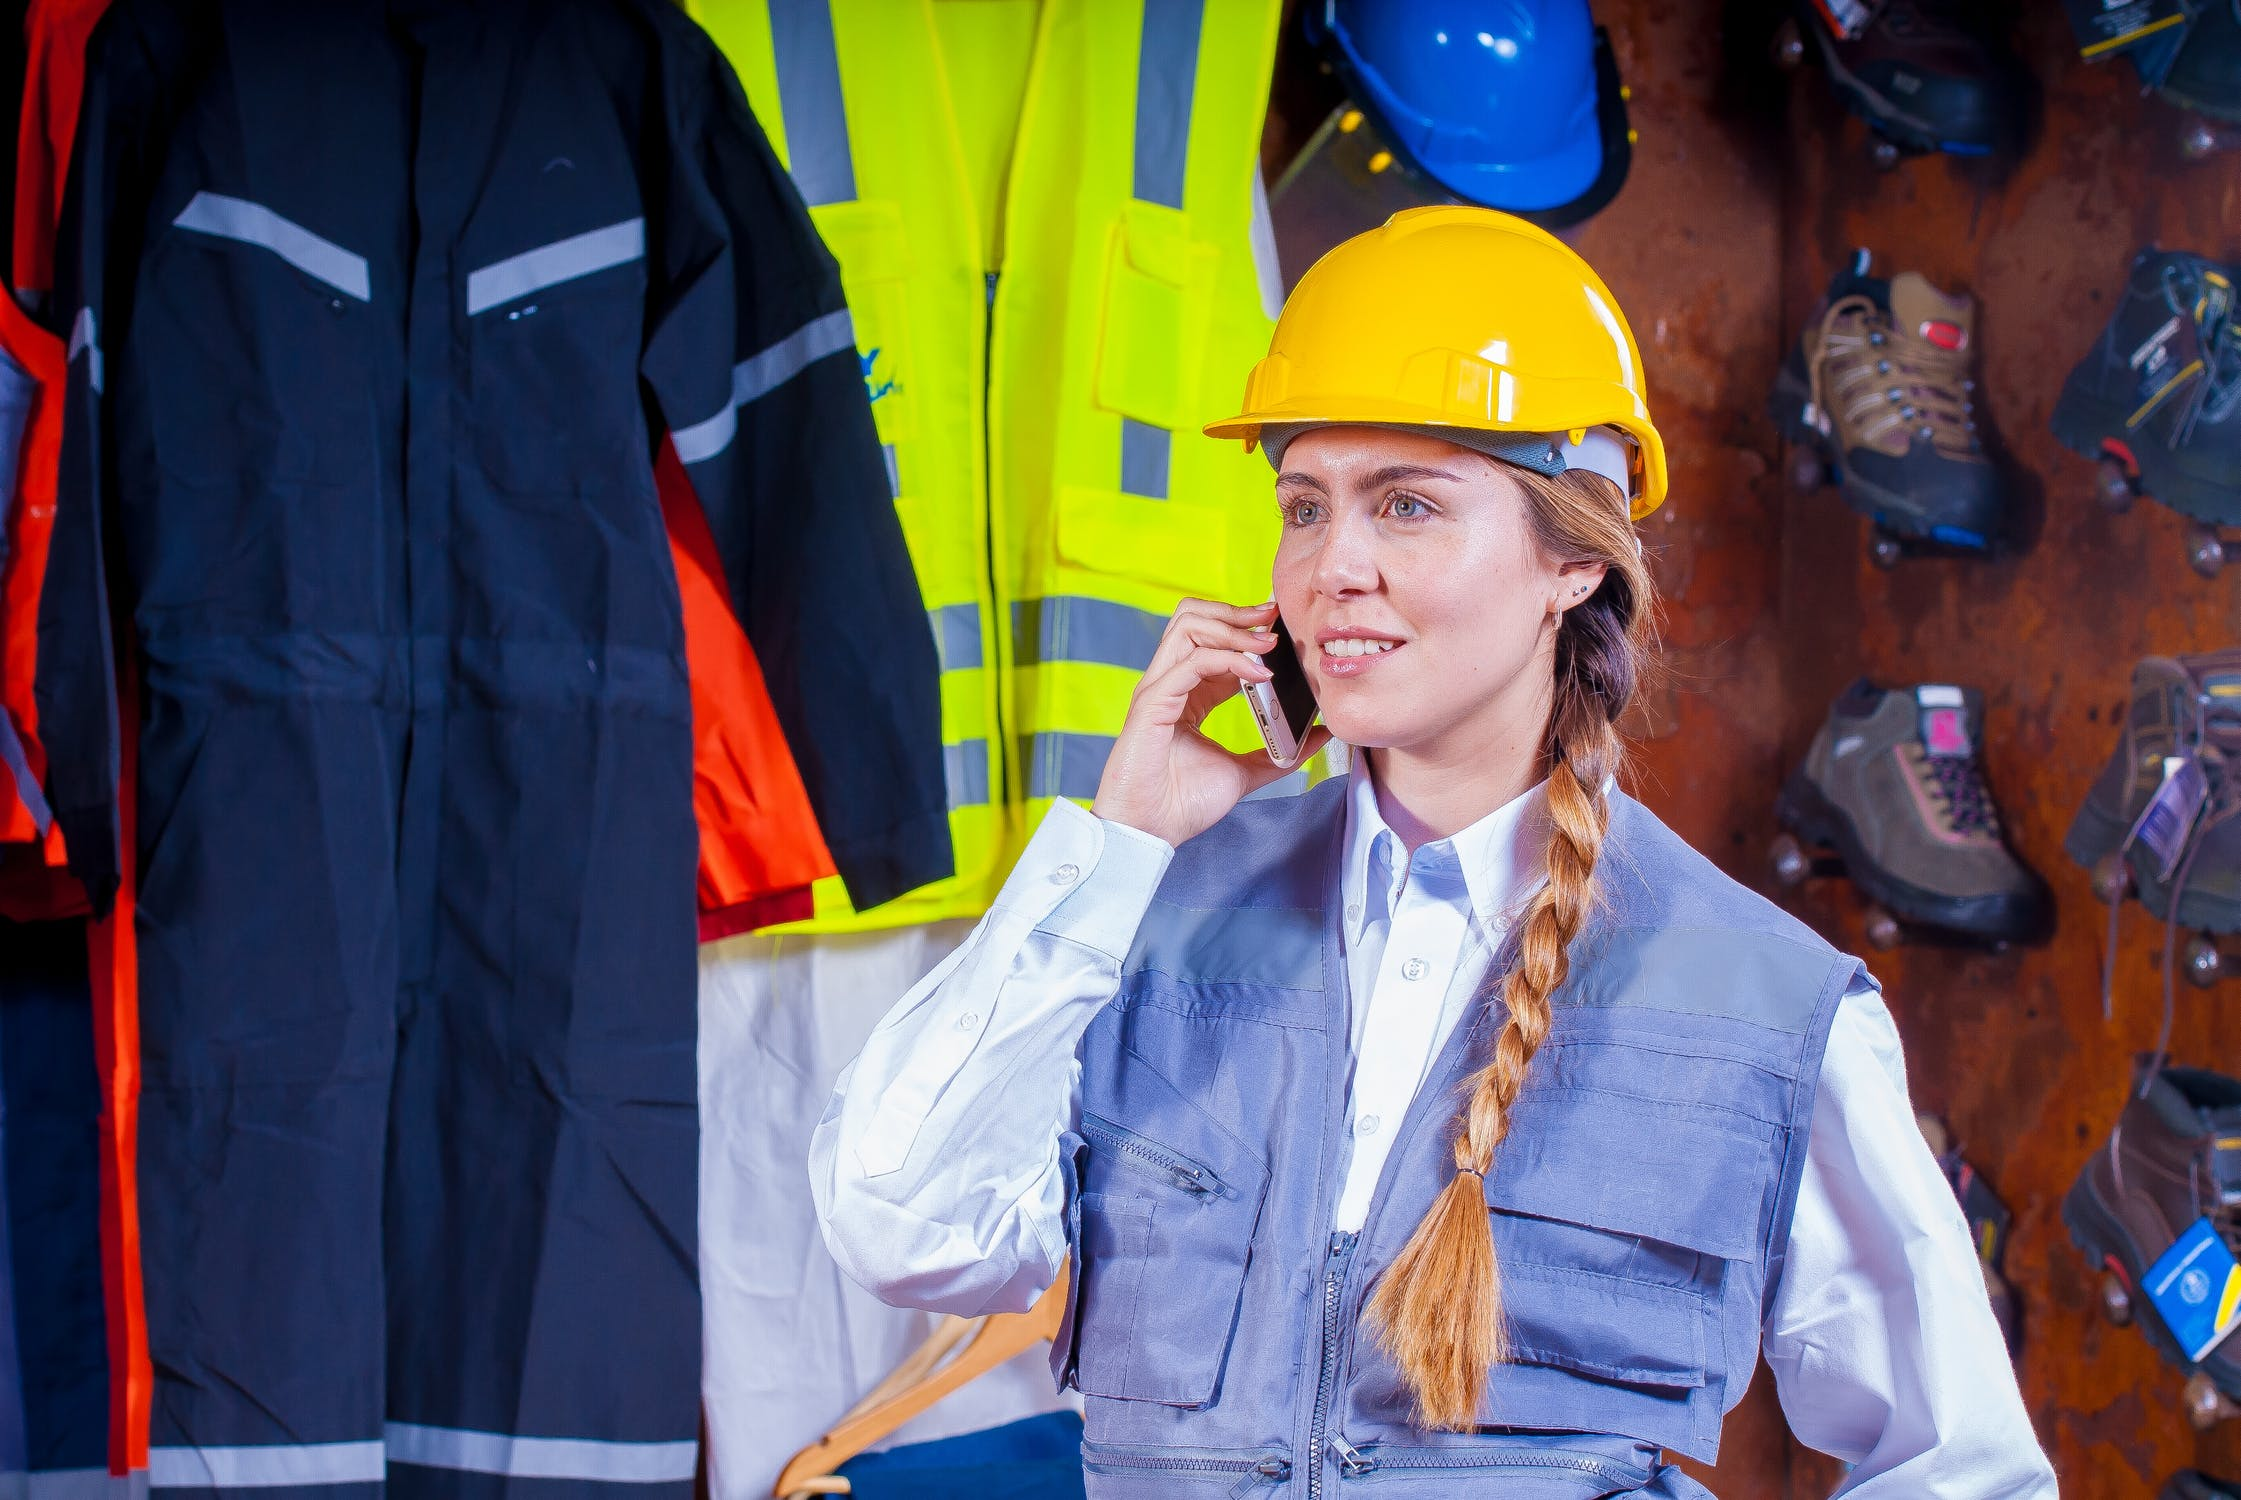 Mobile field service management is integral for enabling technicians to improve the customer experience